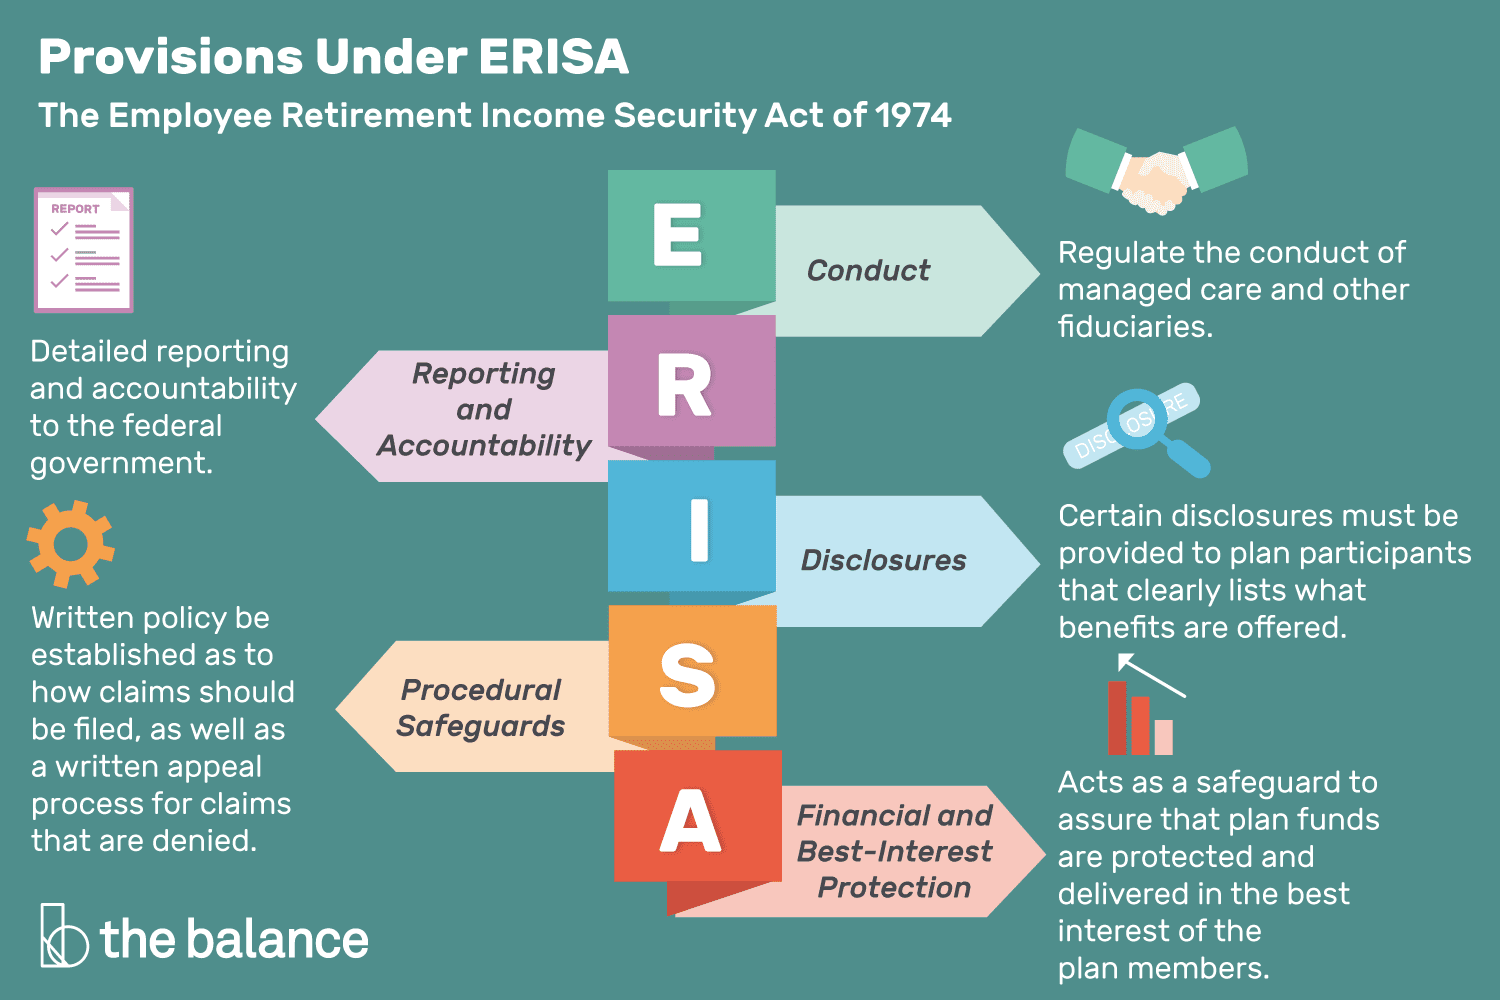 Guide to Provisions Under ERISA